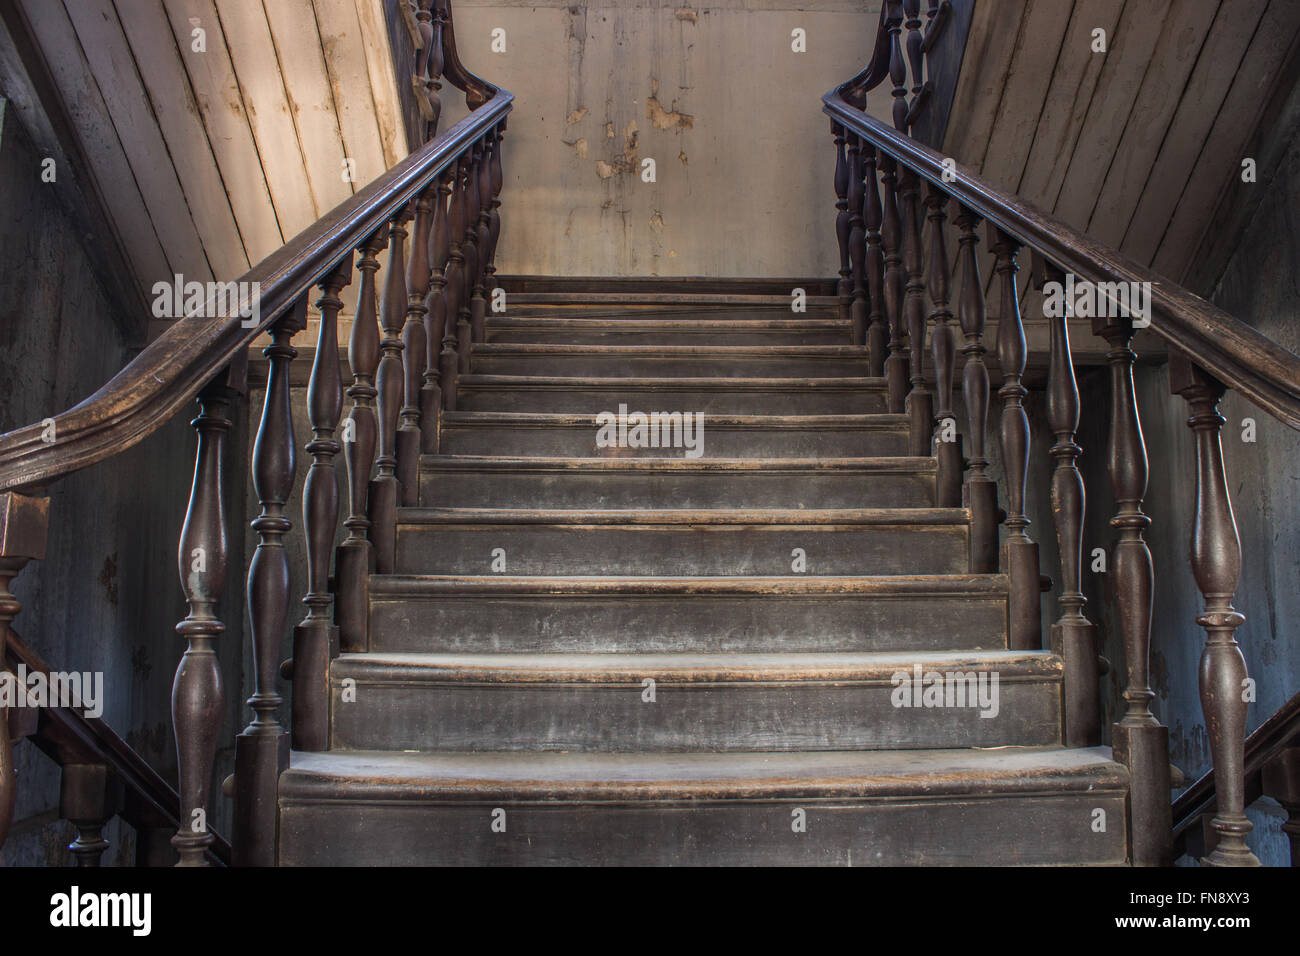 Merveilleux Old Wooden Staircase Railing. Handrails, Balusters And Stair Old Wooden  Stairs   Stock Image